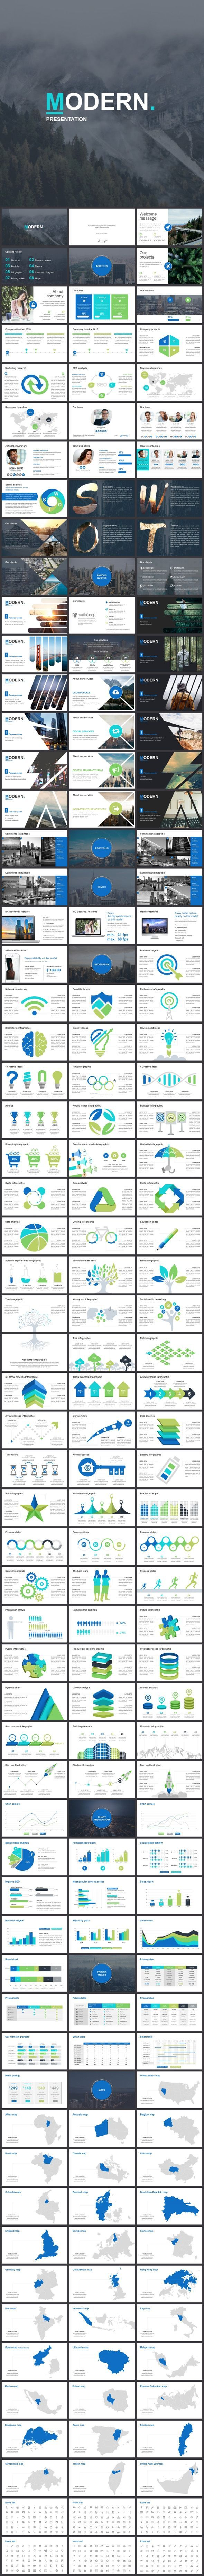 Modern powerpoint template business powerpoint templates modern powerpoint template business powerpoint templates download here https toneelgroepblik Image collections